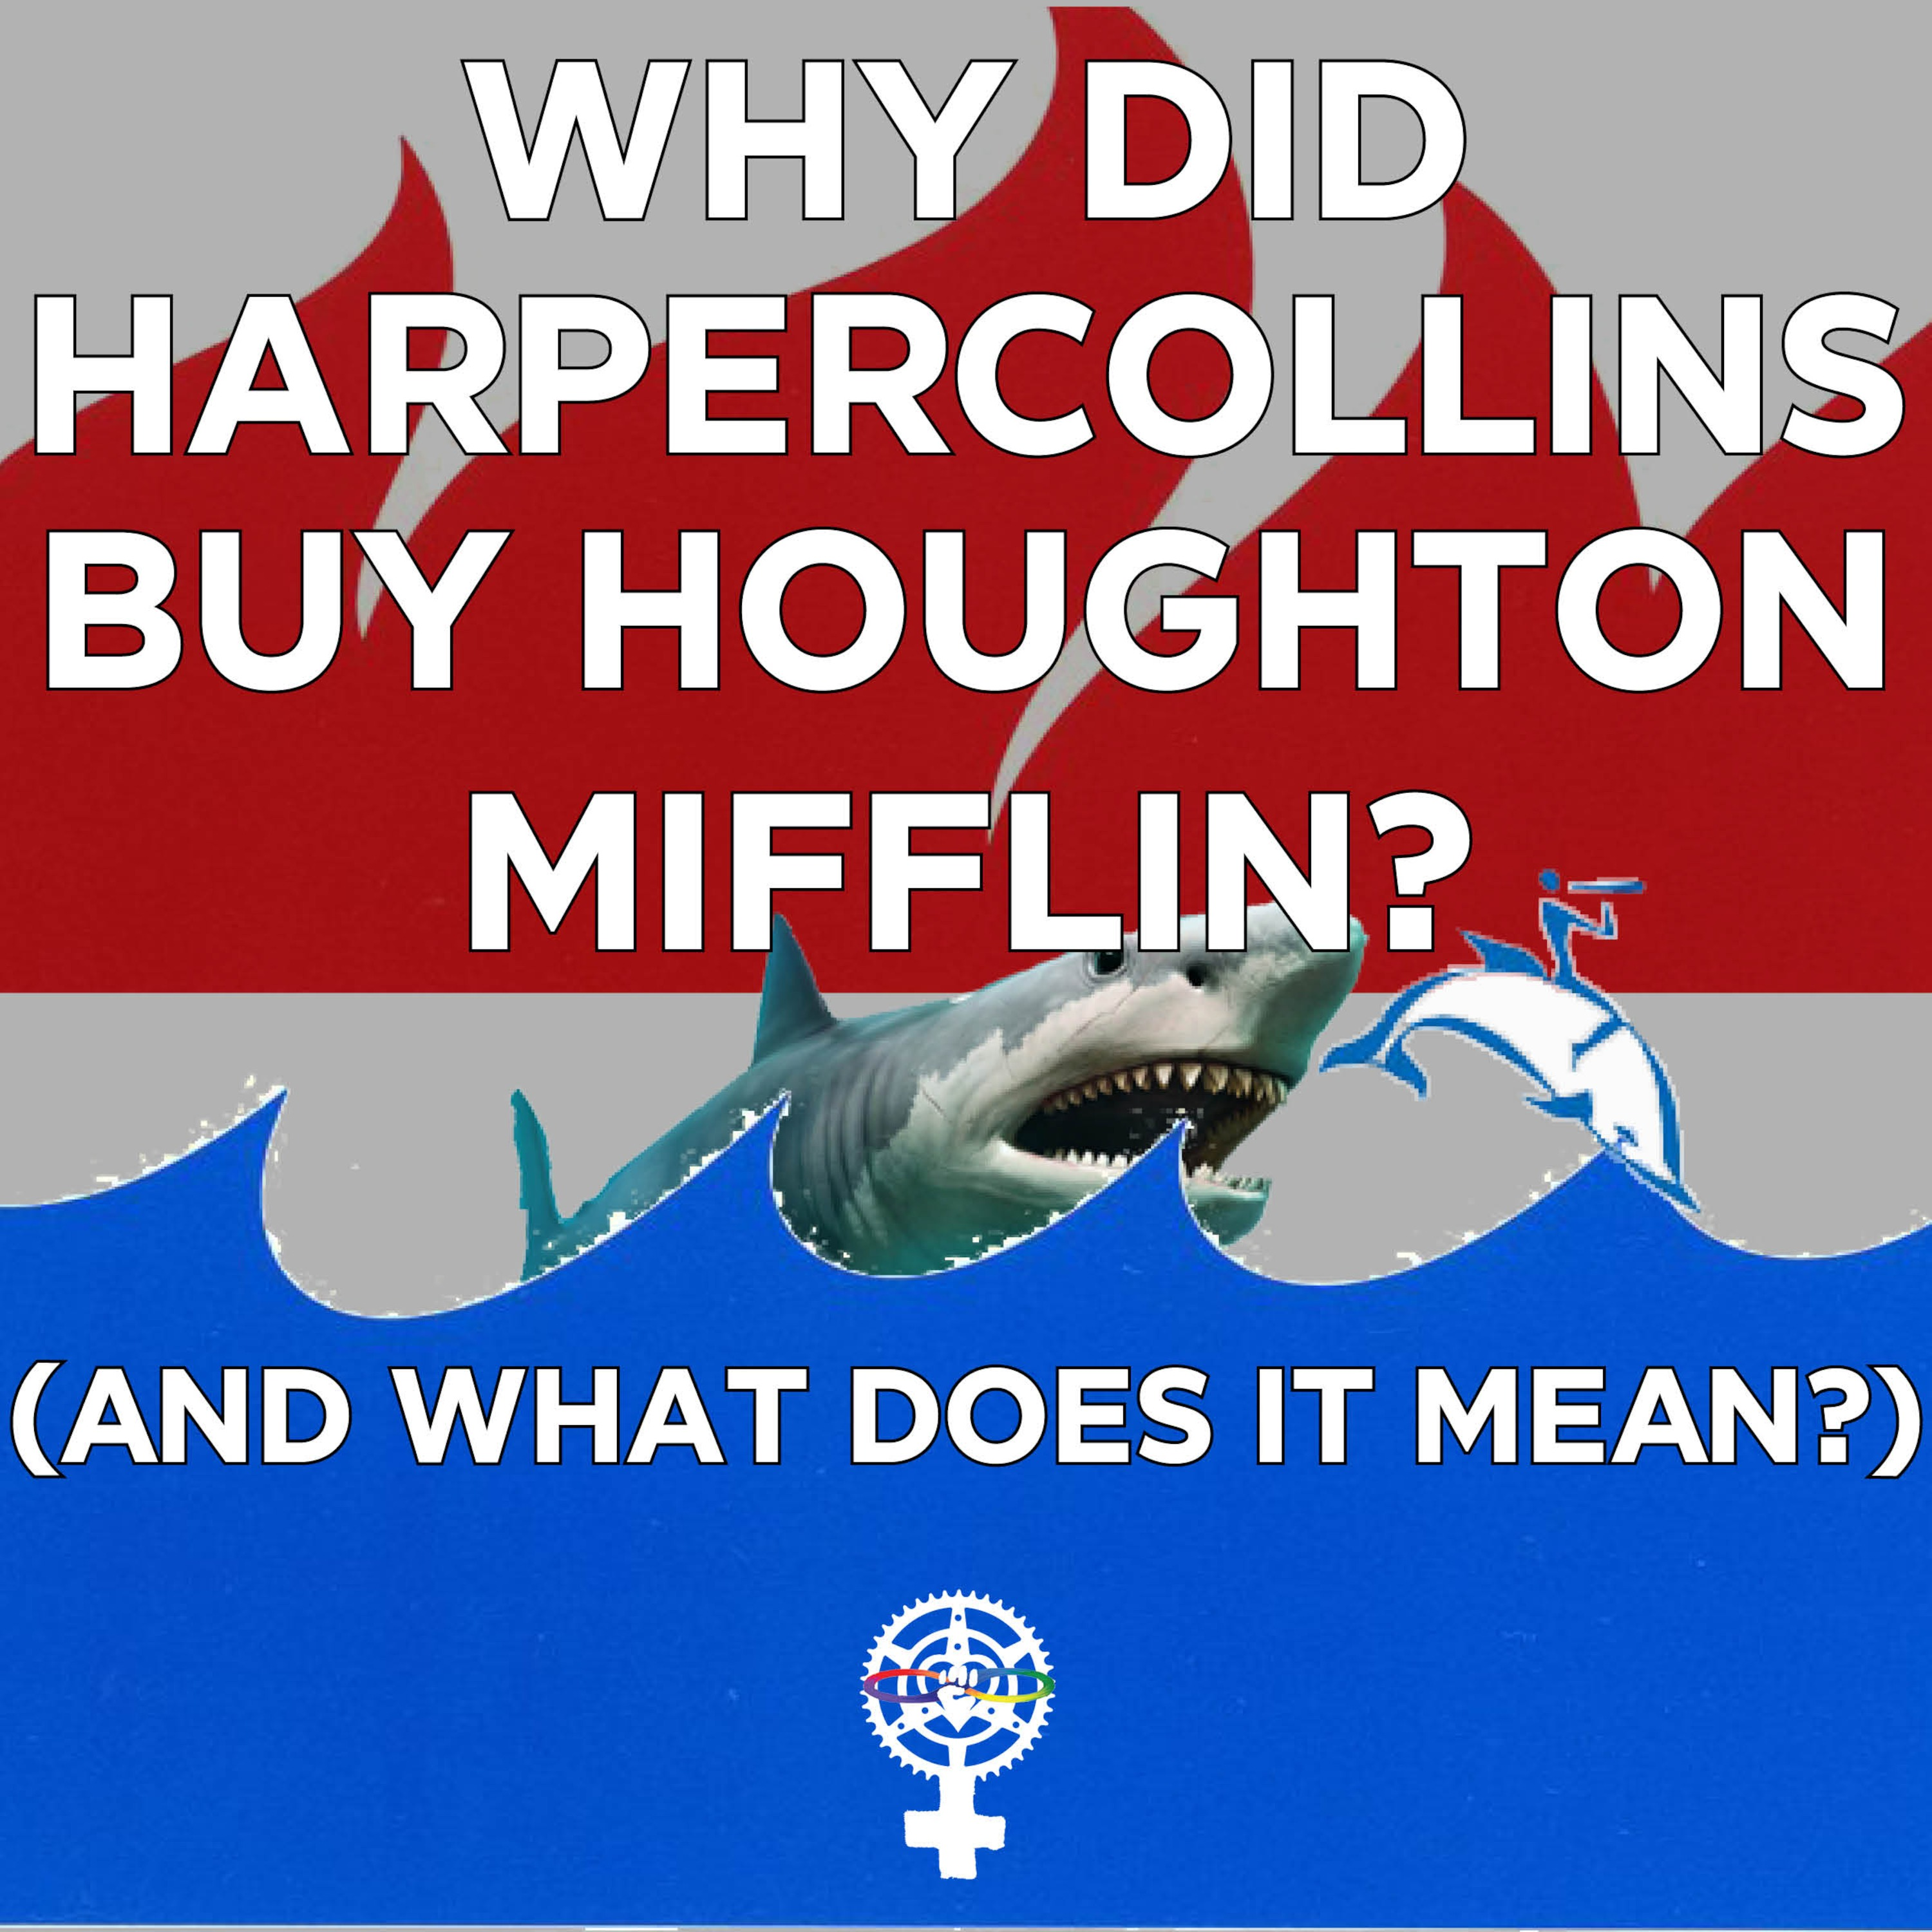 Why did HarperCollins buy Houghton Mifflin and what does it mean?